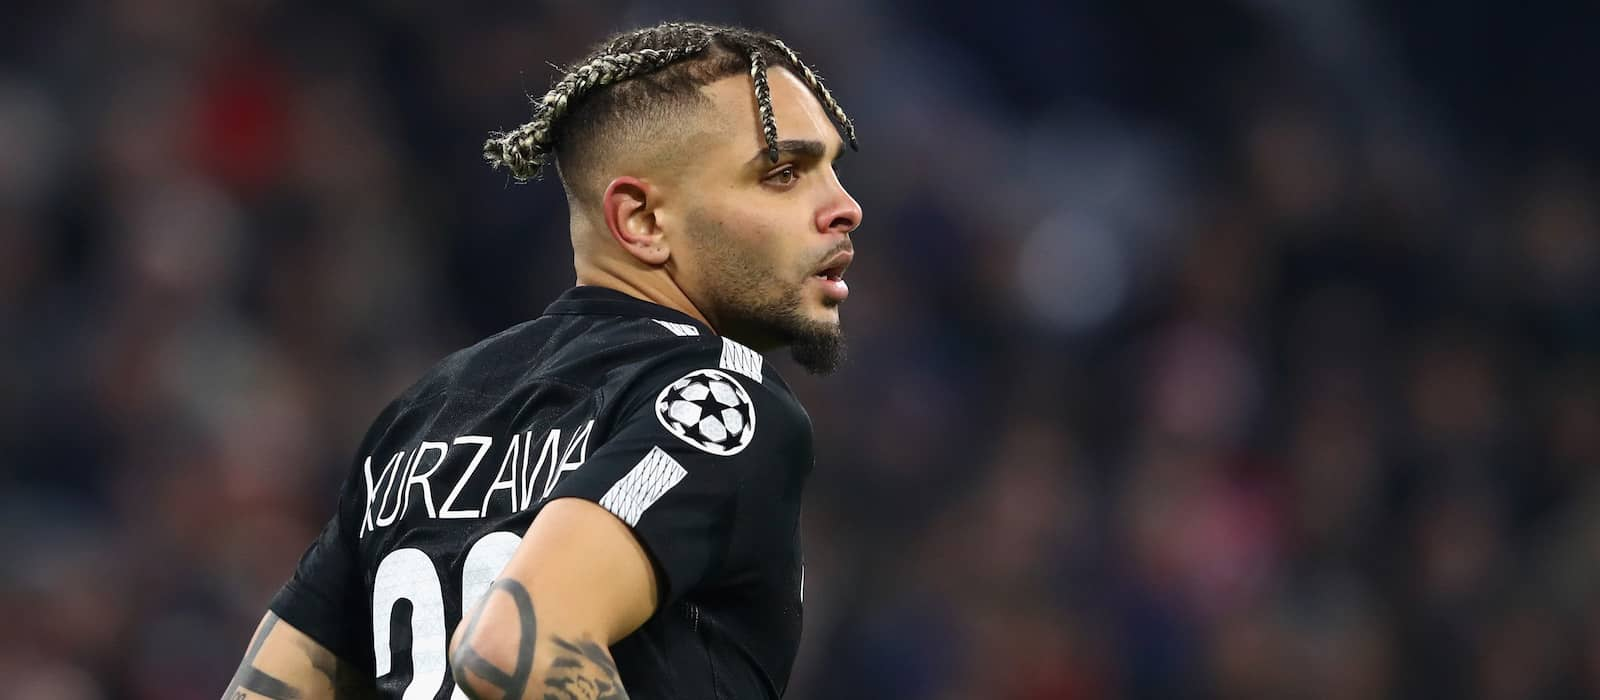 Ian Marmion: Manchester United are clear favourites to sign Layvin Kurzawa